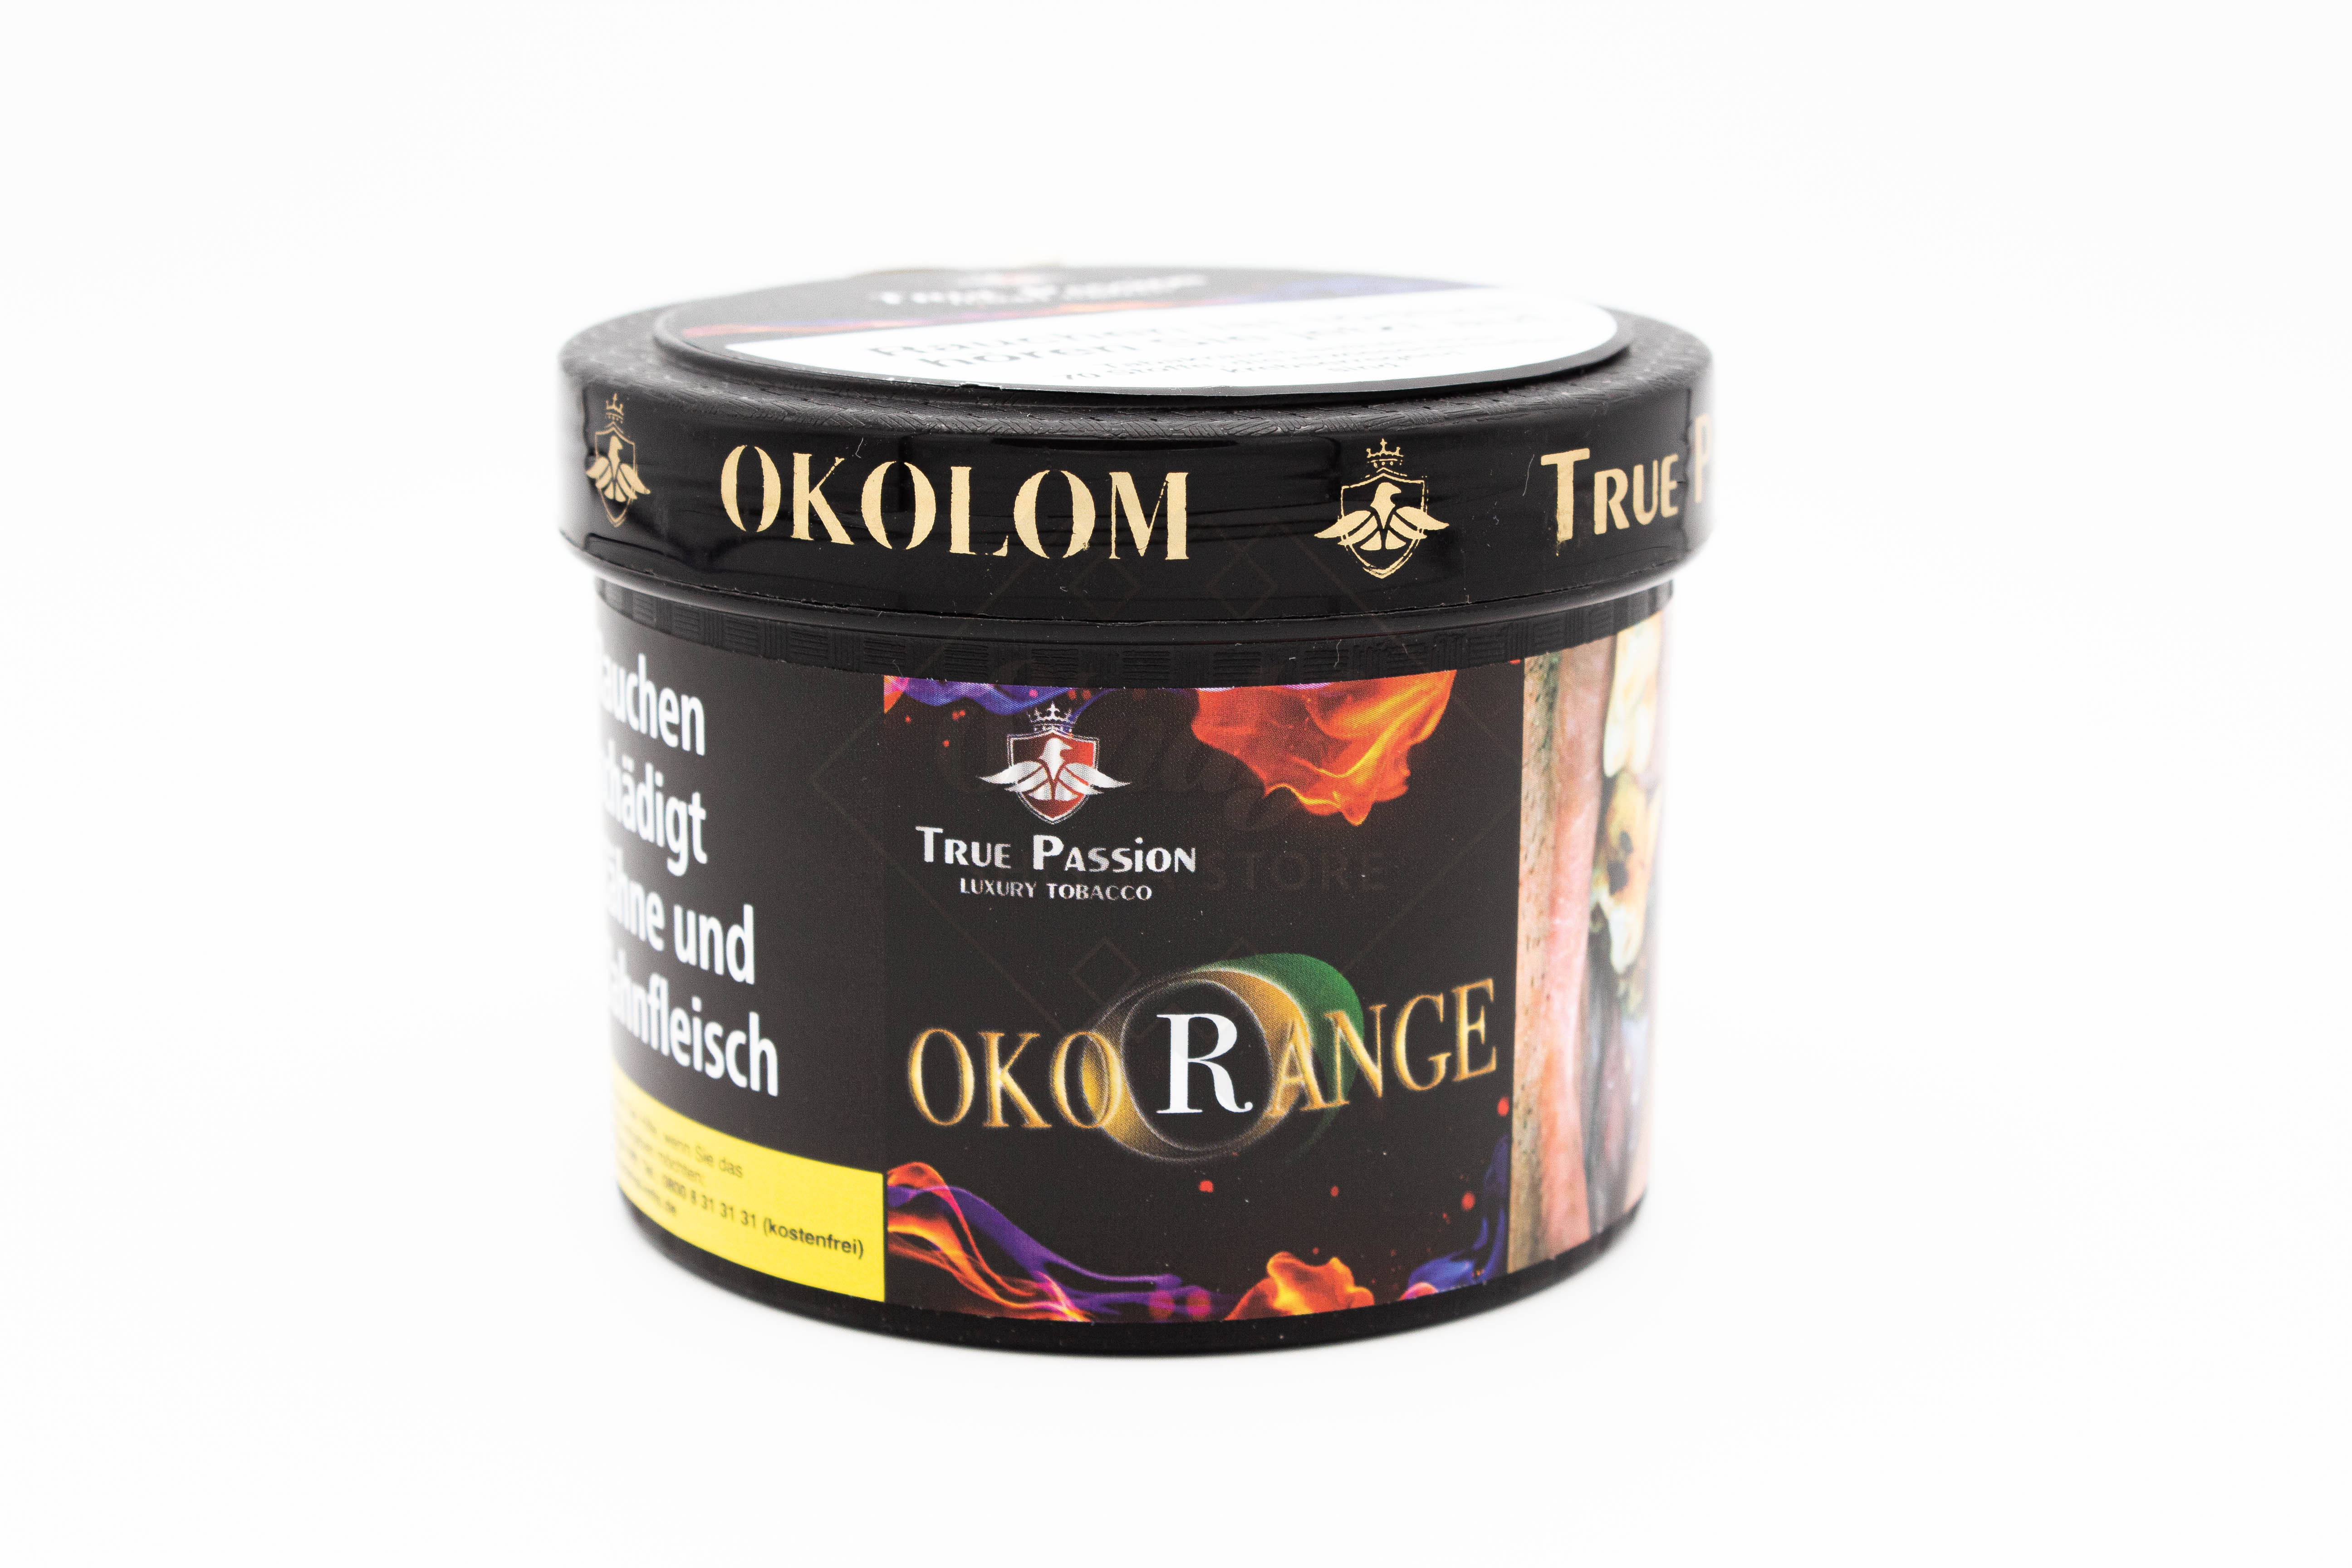 True Passion Tobacco - Okorange 200g